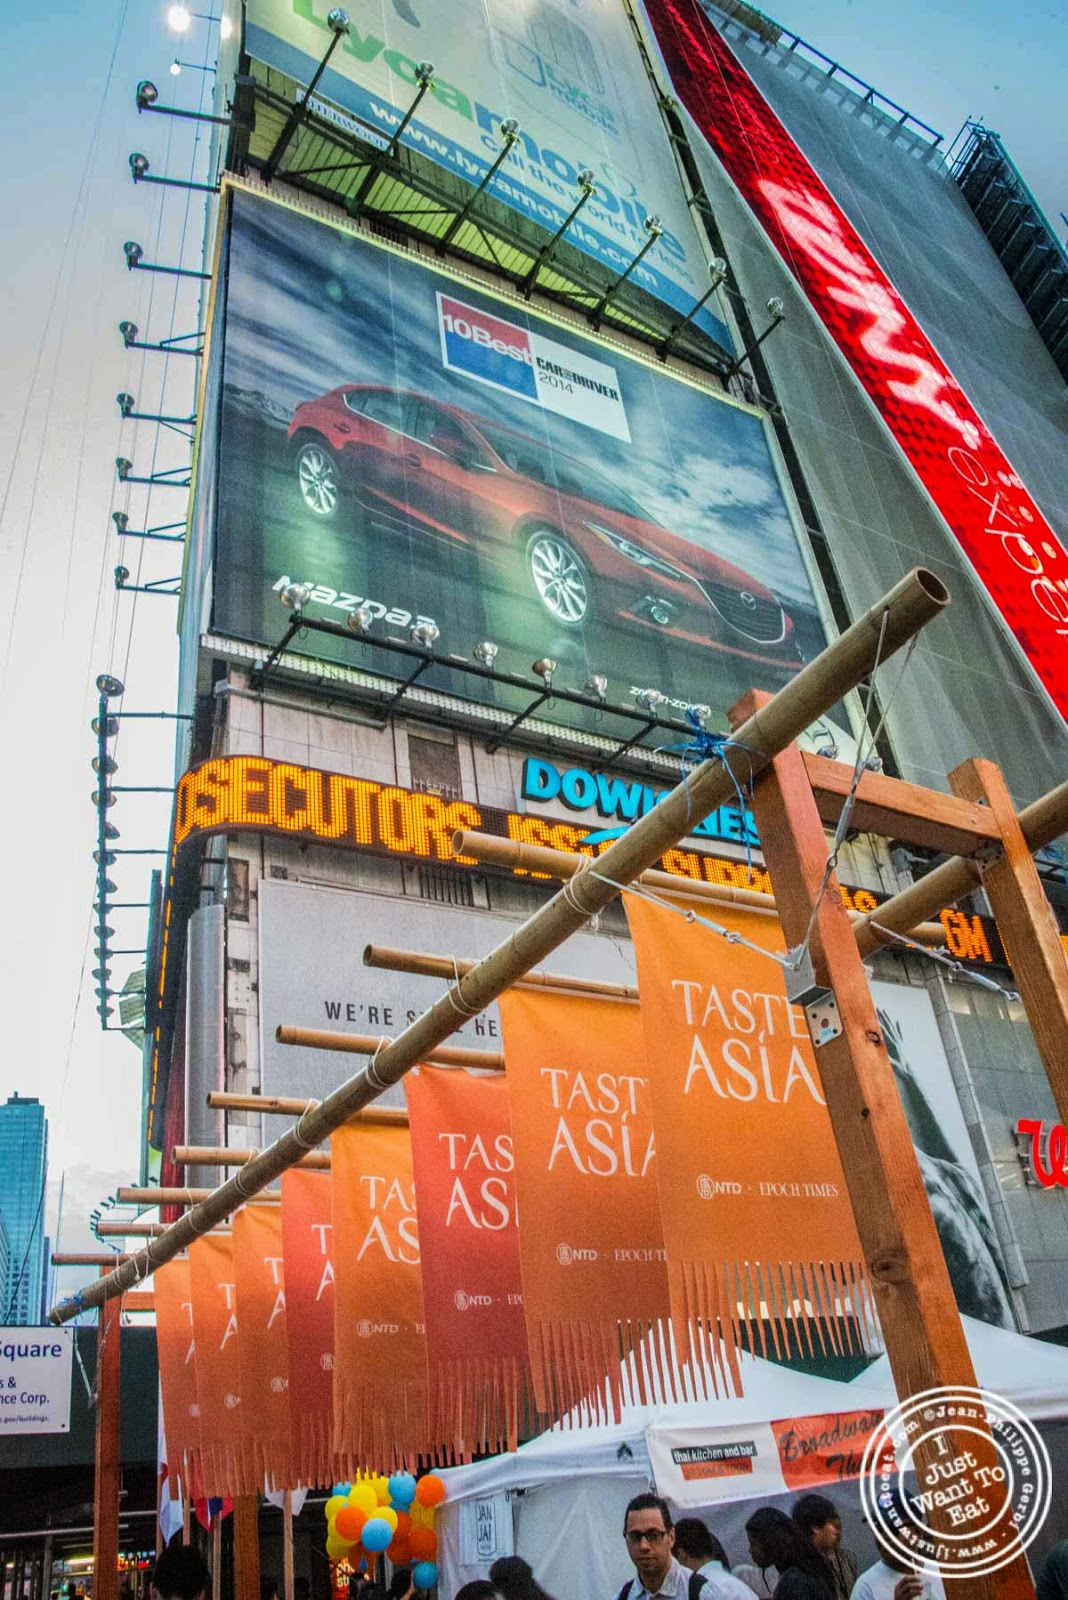 image of Taste of Asia 2014 in Times Square